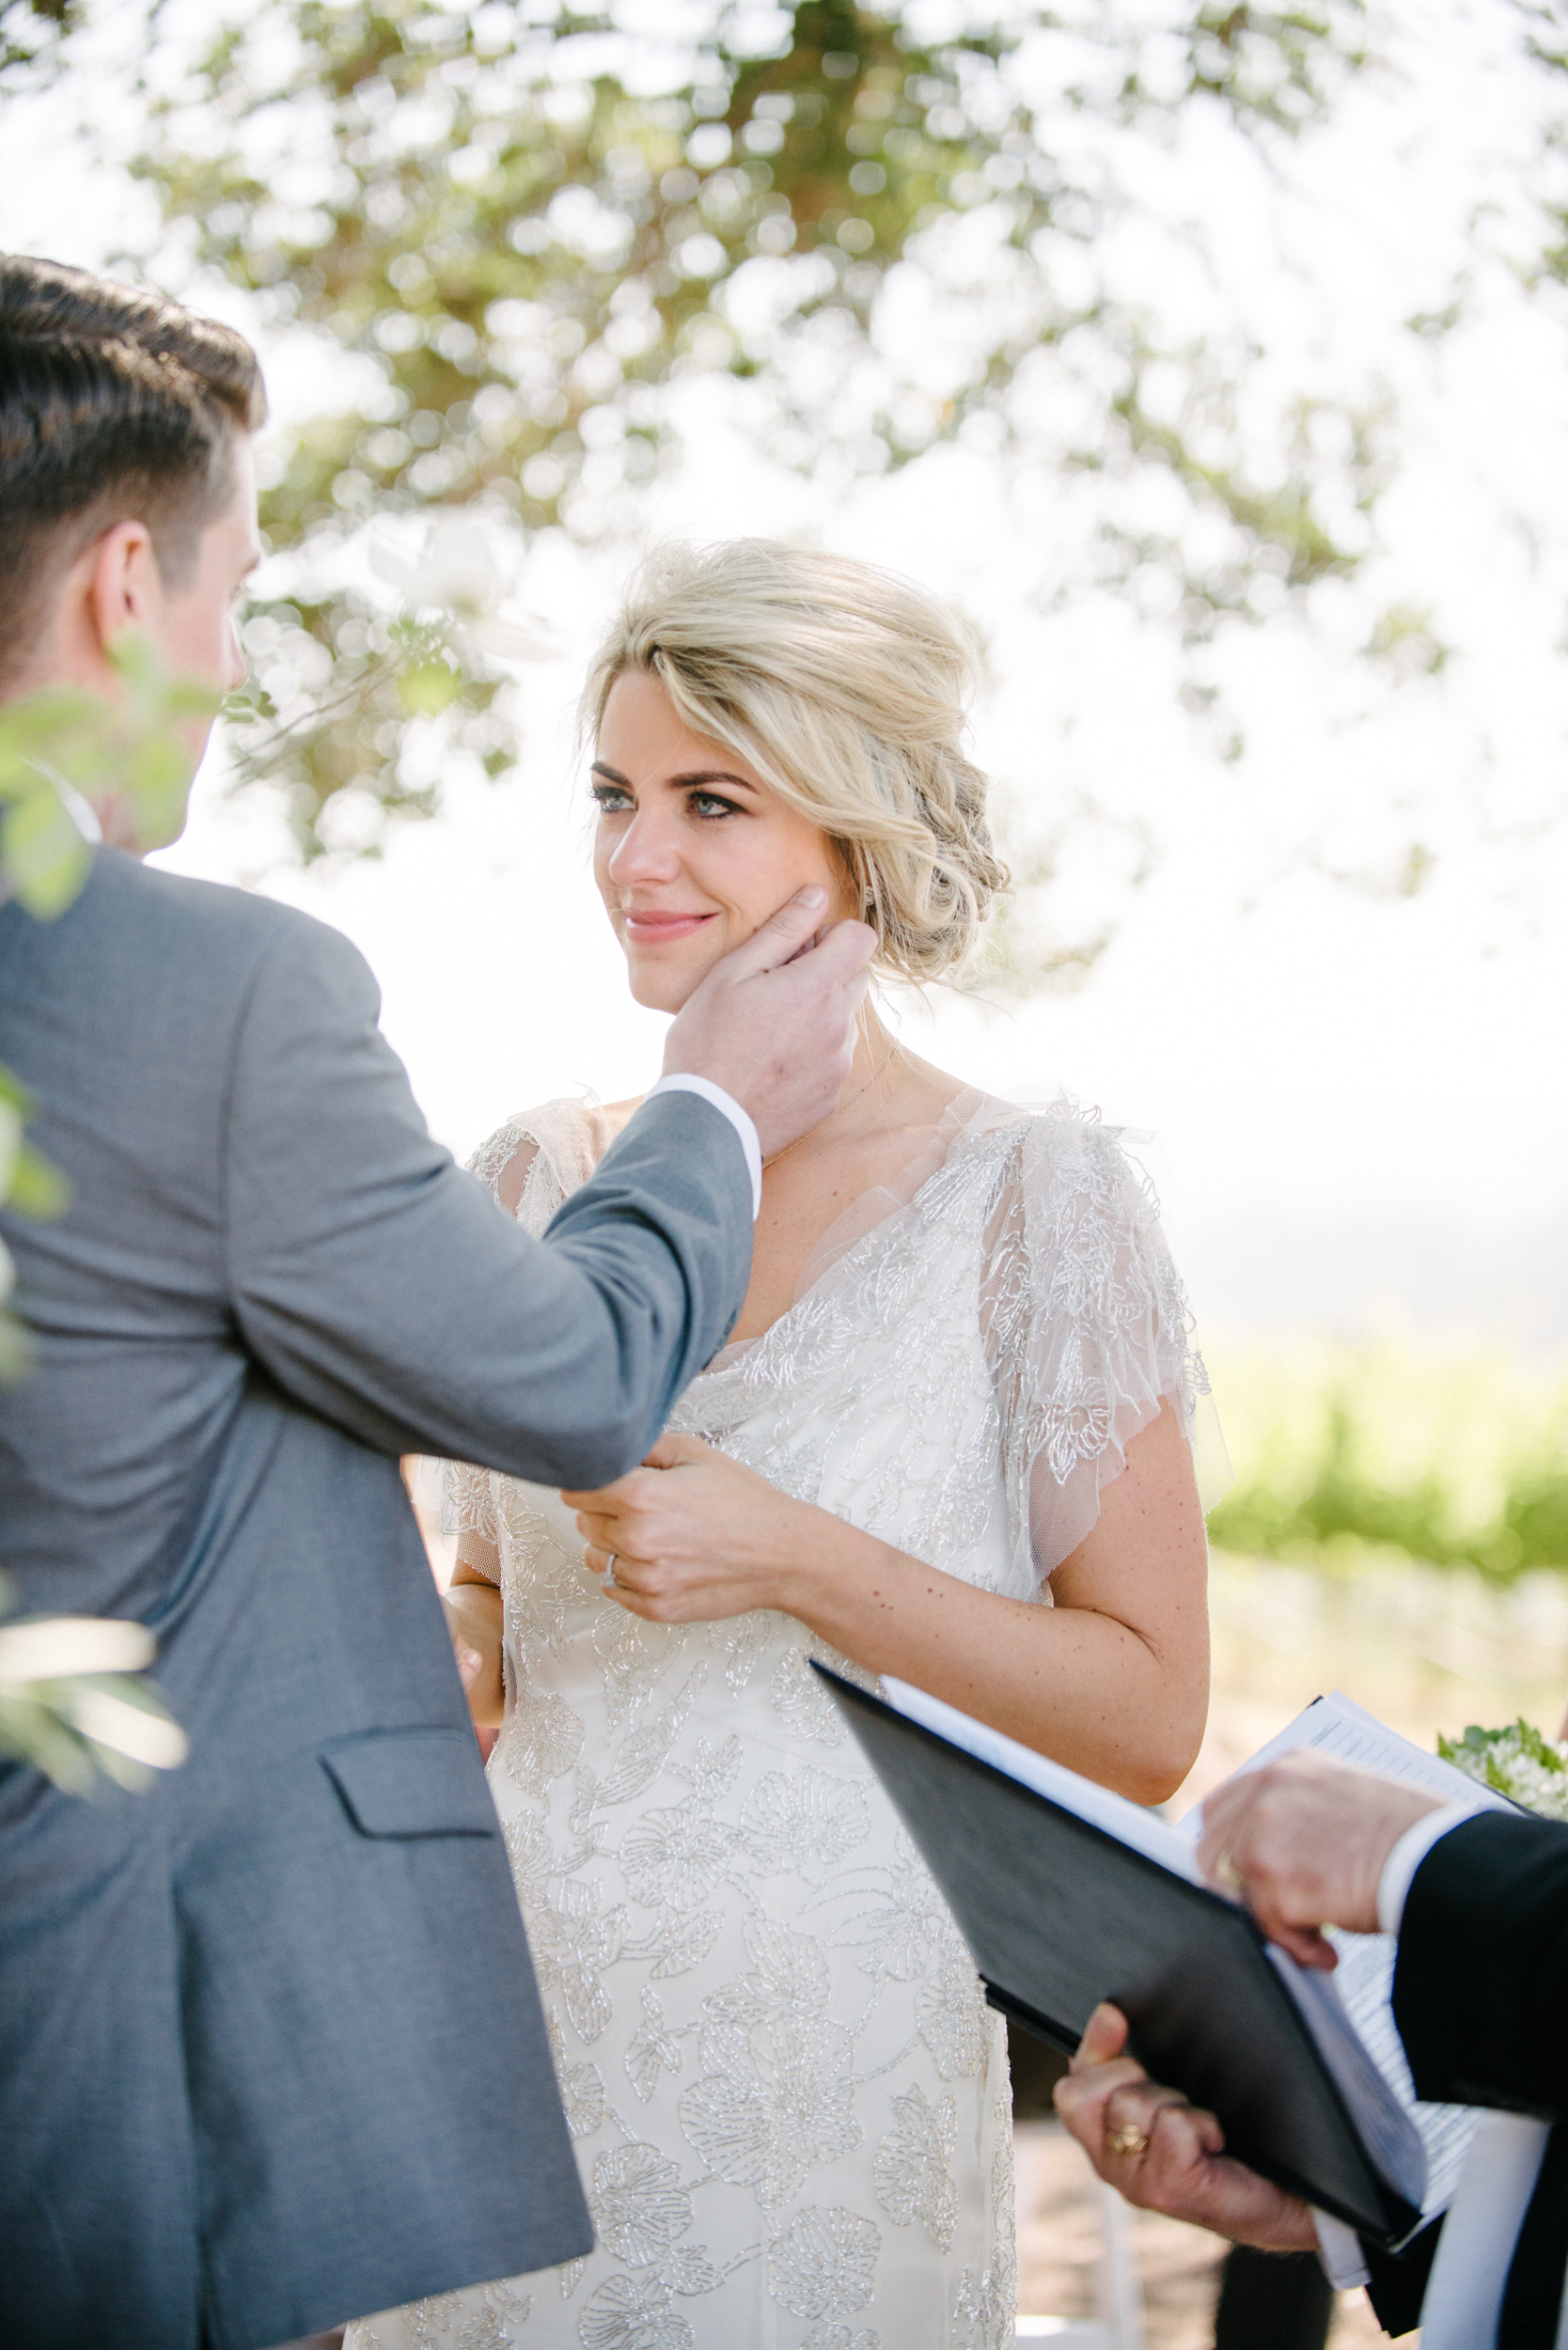 Sylvie-Gil-film-destination-photography-Kunde-winery-Napa-Valley-elegant-shabby-chic-ceremony-groom-touches-bride-face